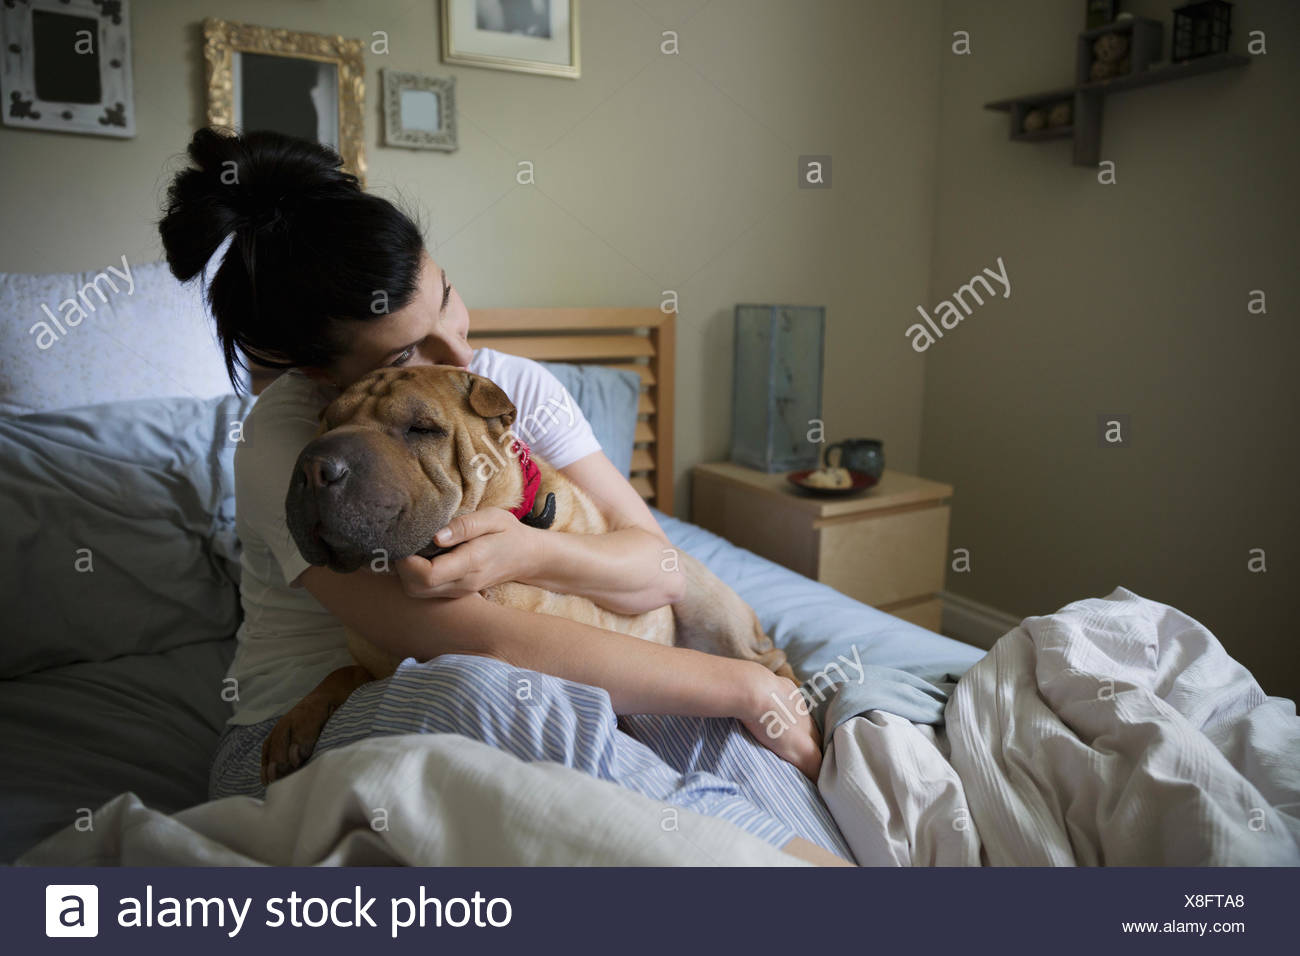 Woman hugging dog in bed - Stock Image